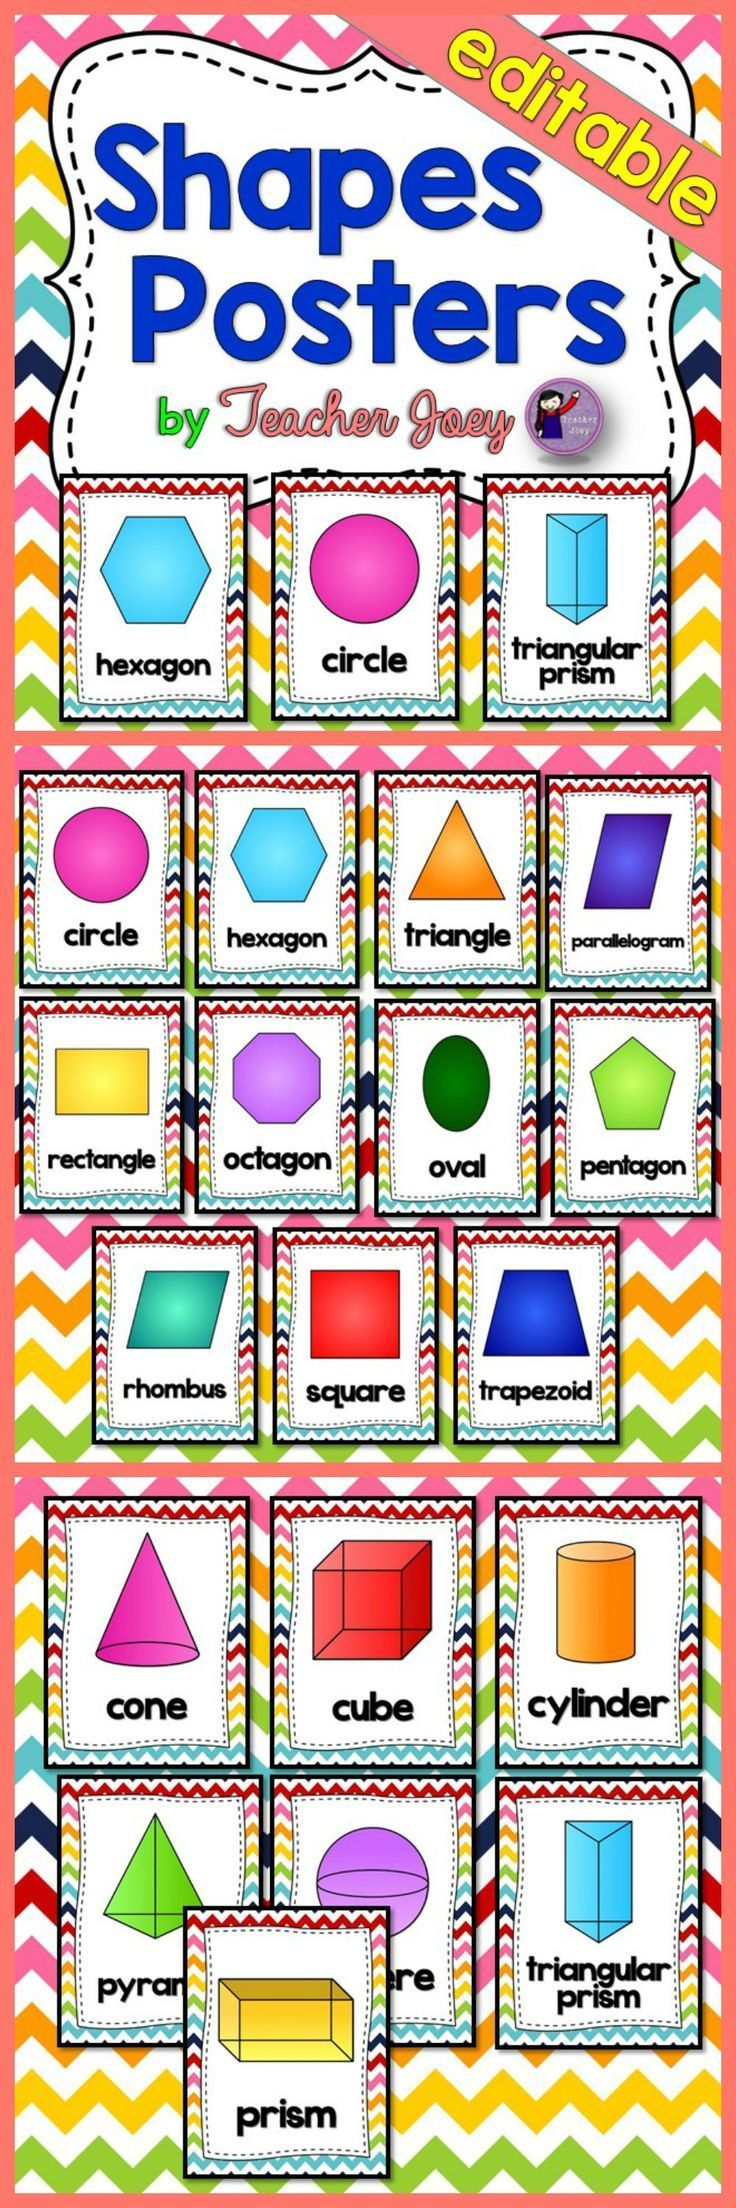 Poster design using 3d objects - Best 25 3d Geometric Shapes Ideas On Pinterest Origami Shapes Kindergarten Shapes And 3d Shapes Activities